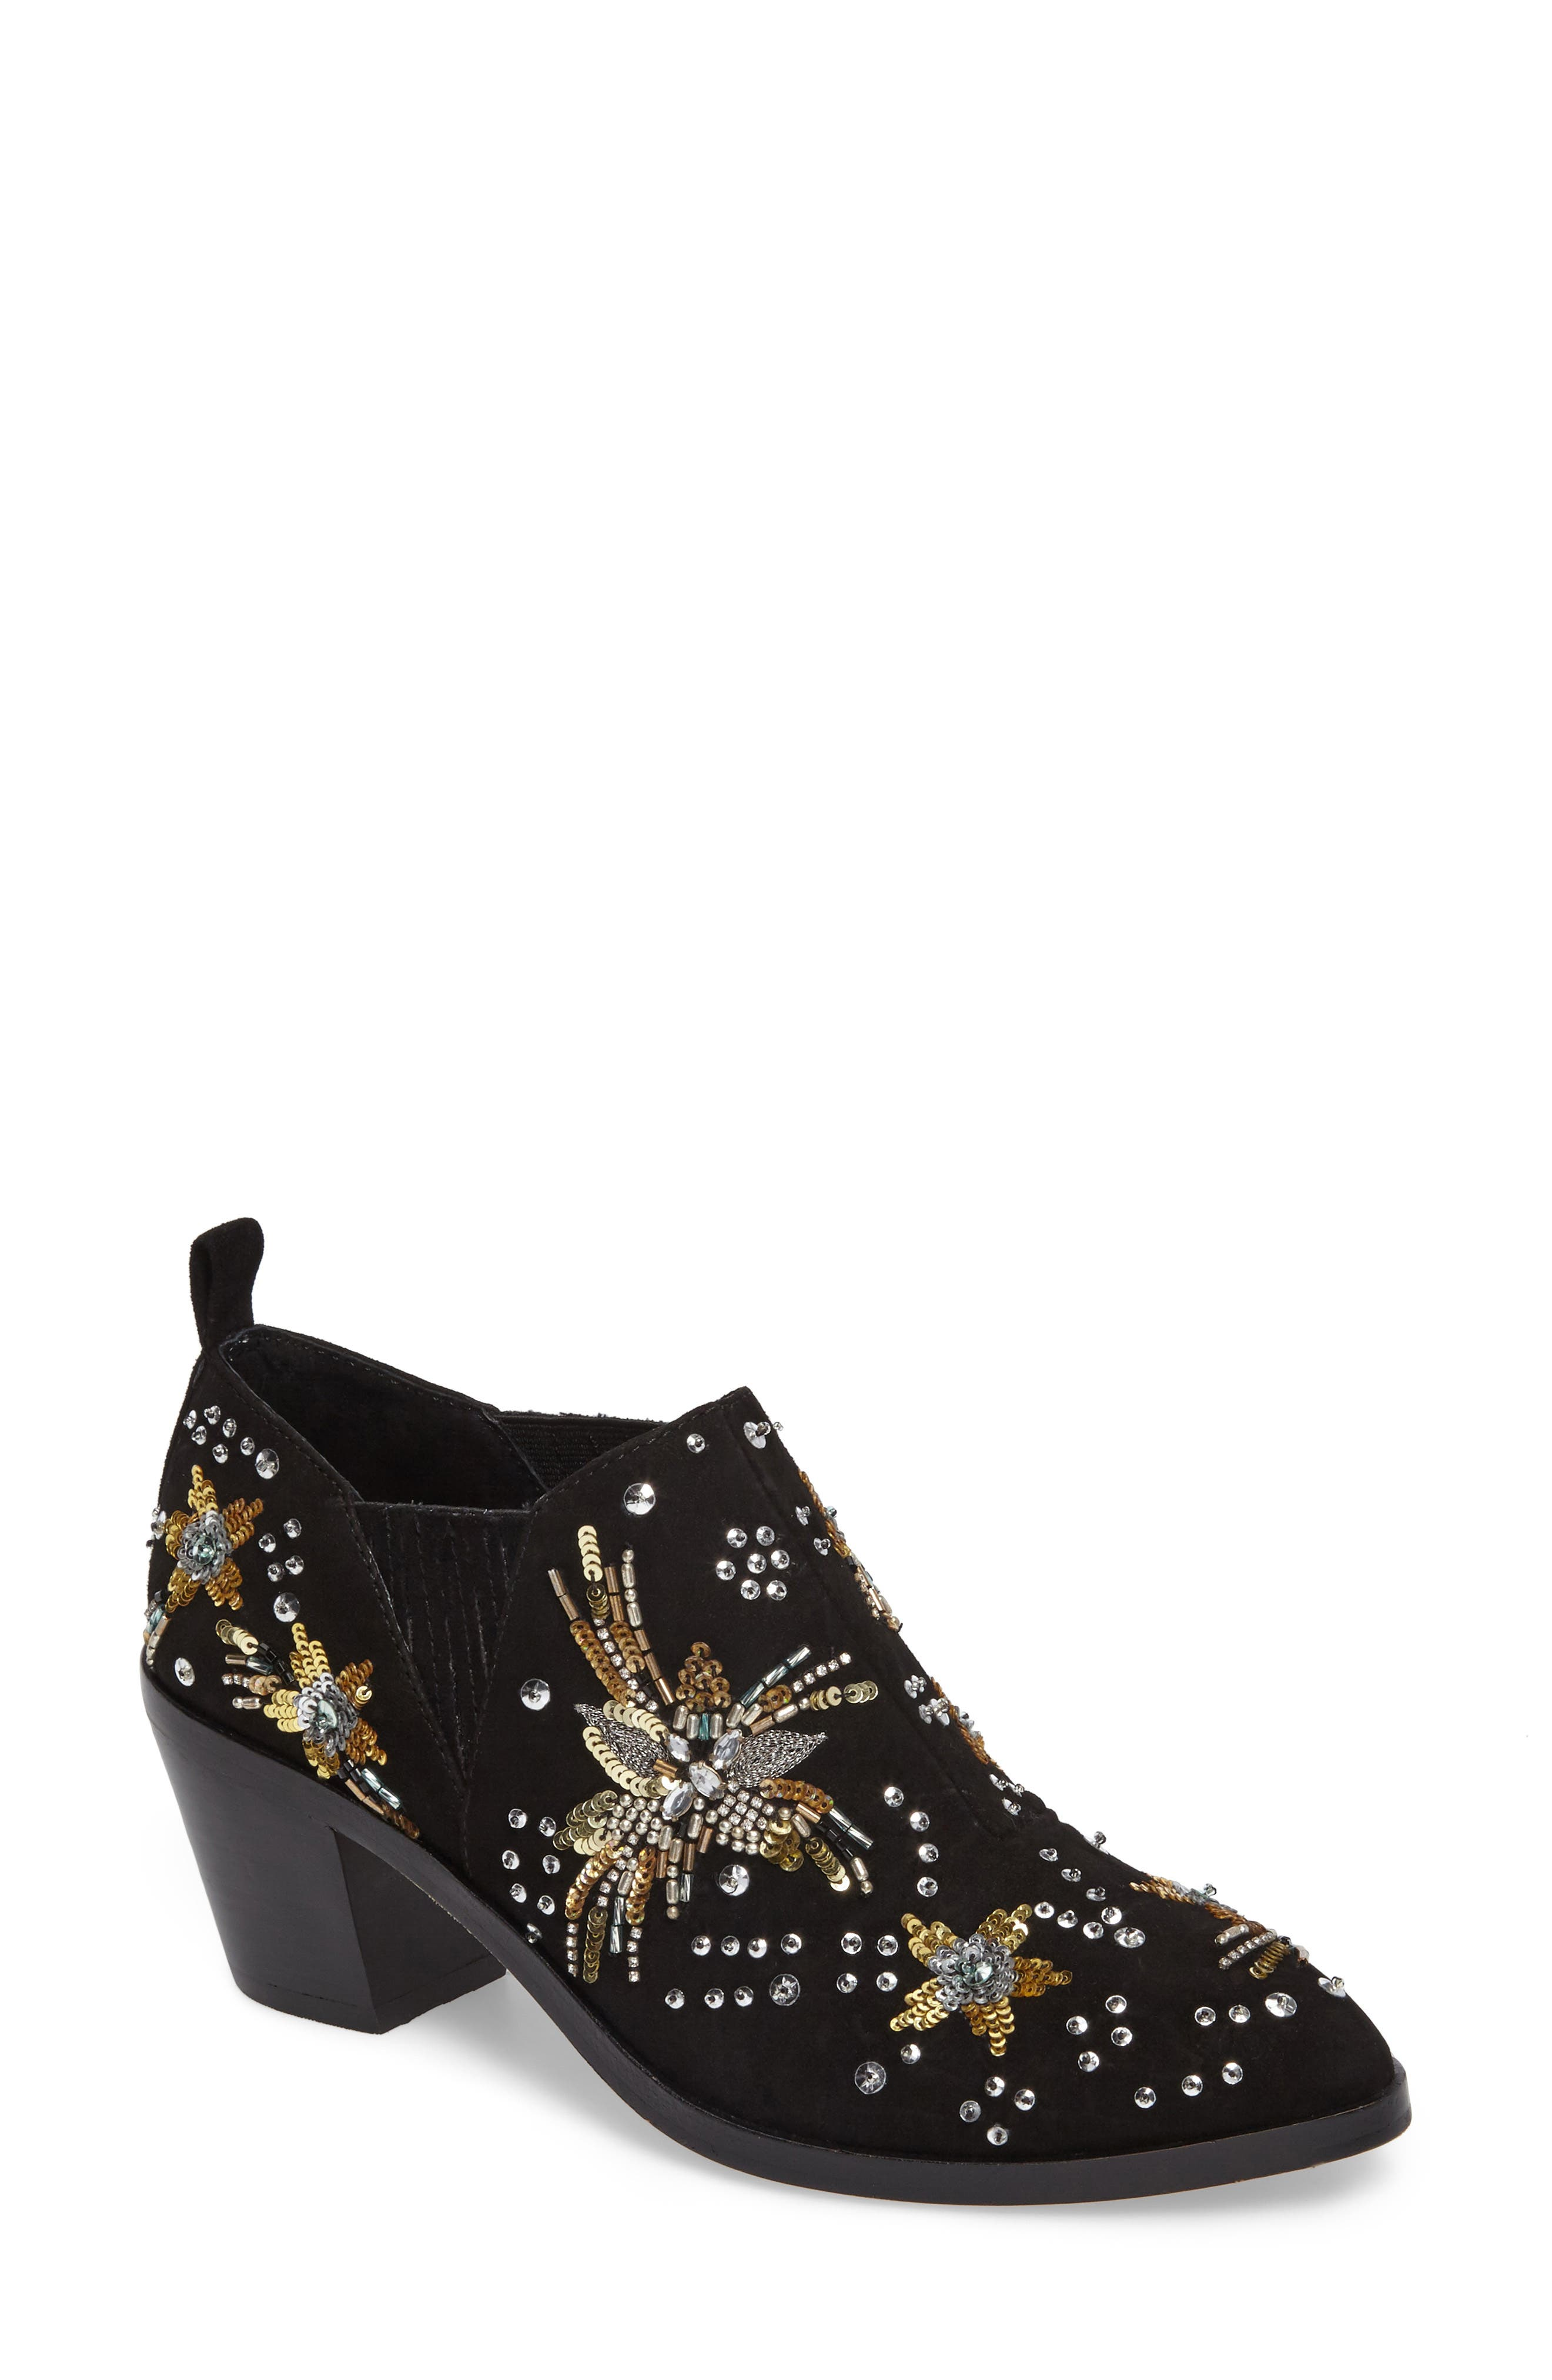 Lucy Embellished Bootie,                         Main,                         color, Black